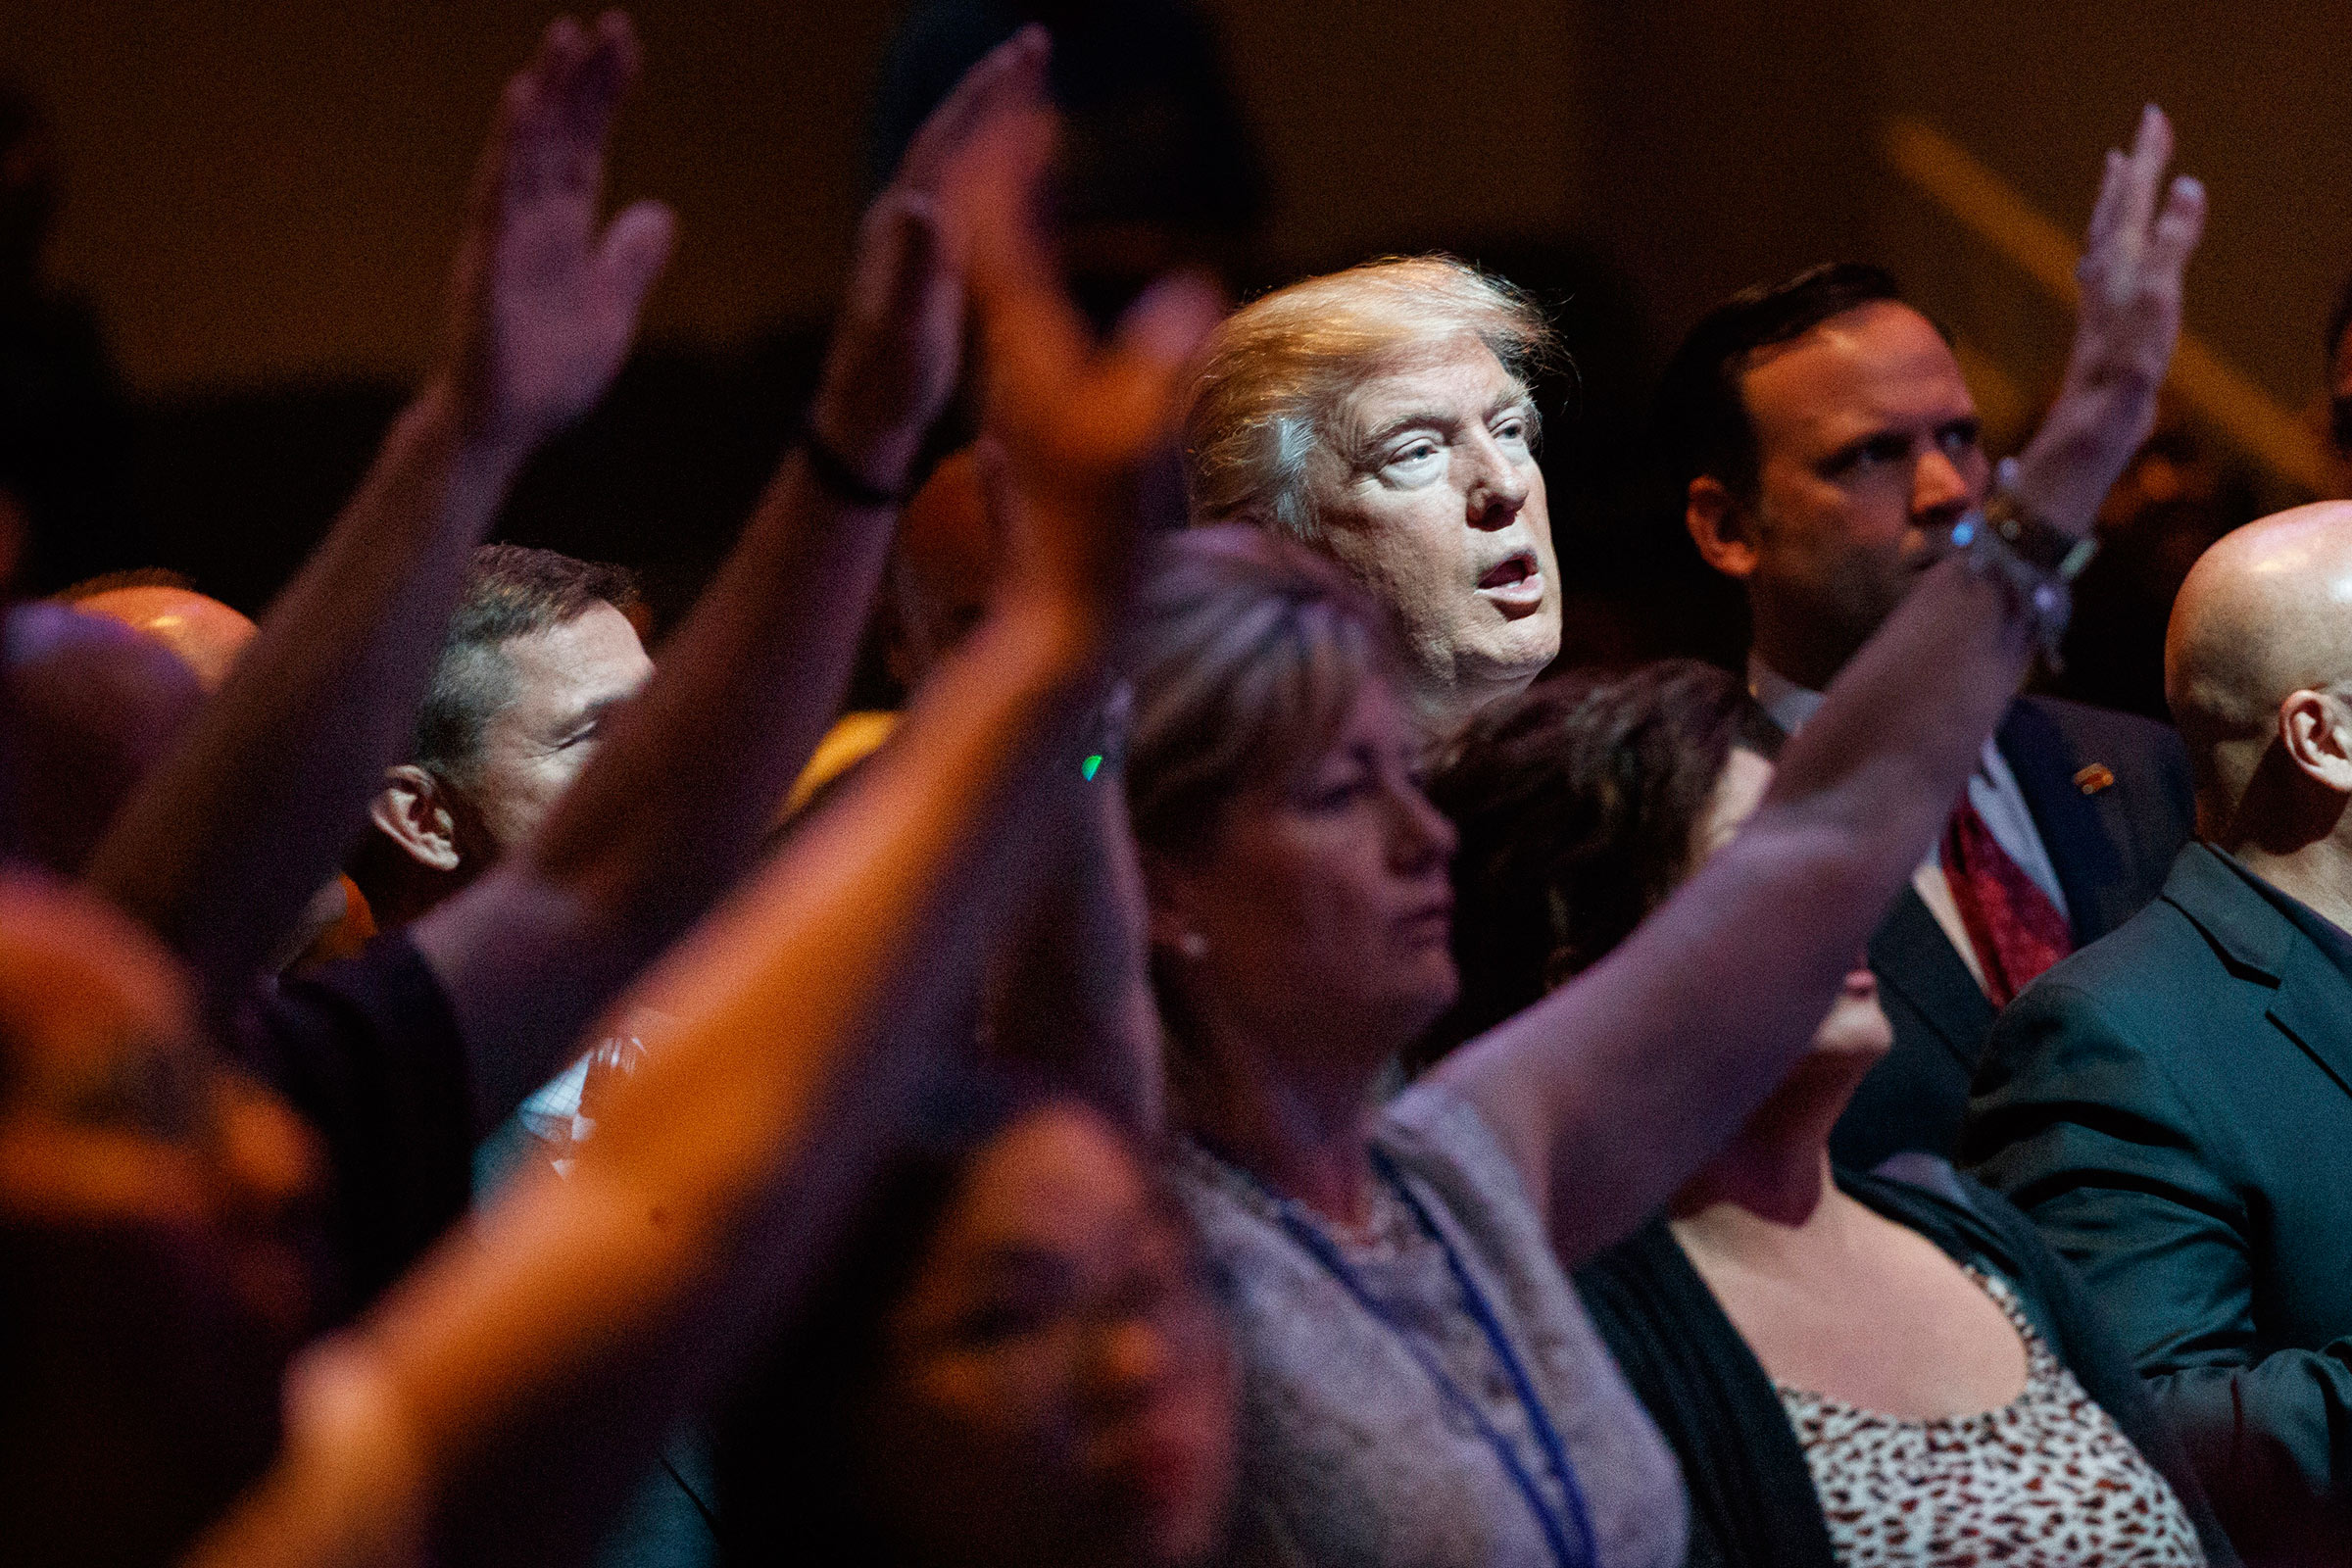 Then-candidate Trump at a 2016 service at the International Church of Las Vegas.